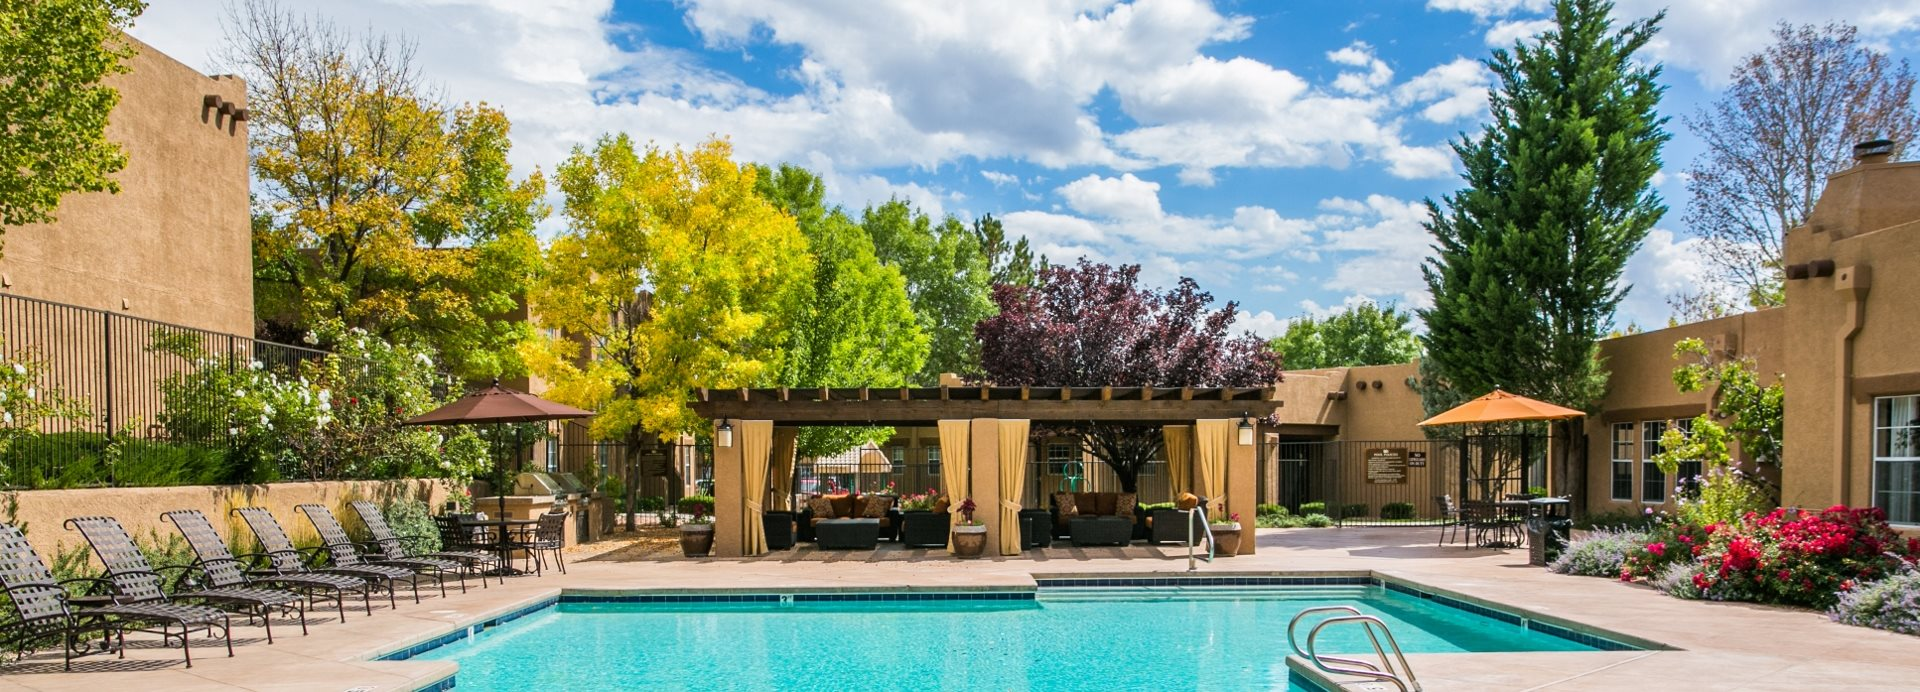 Pool With Sundeck And Lounge Seating In Santa Fe